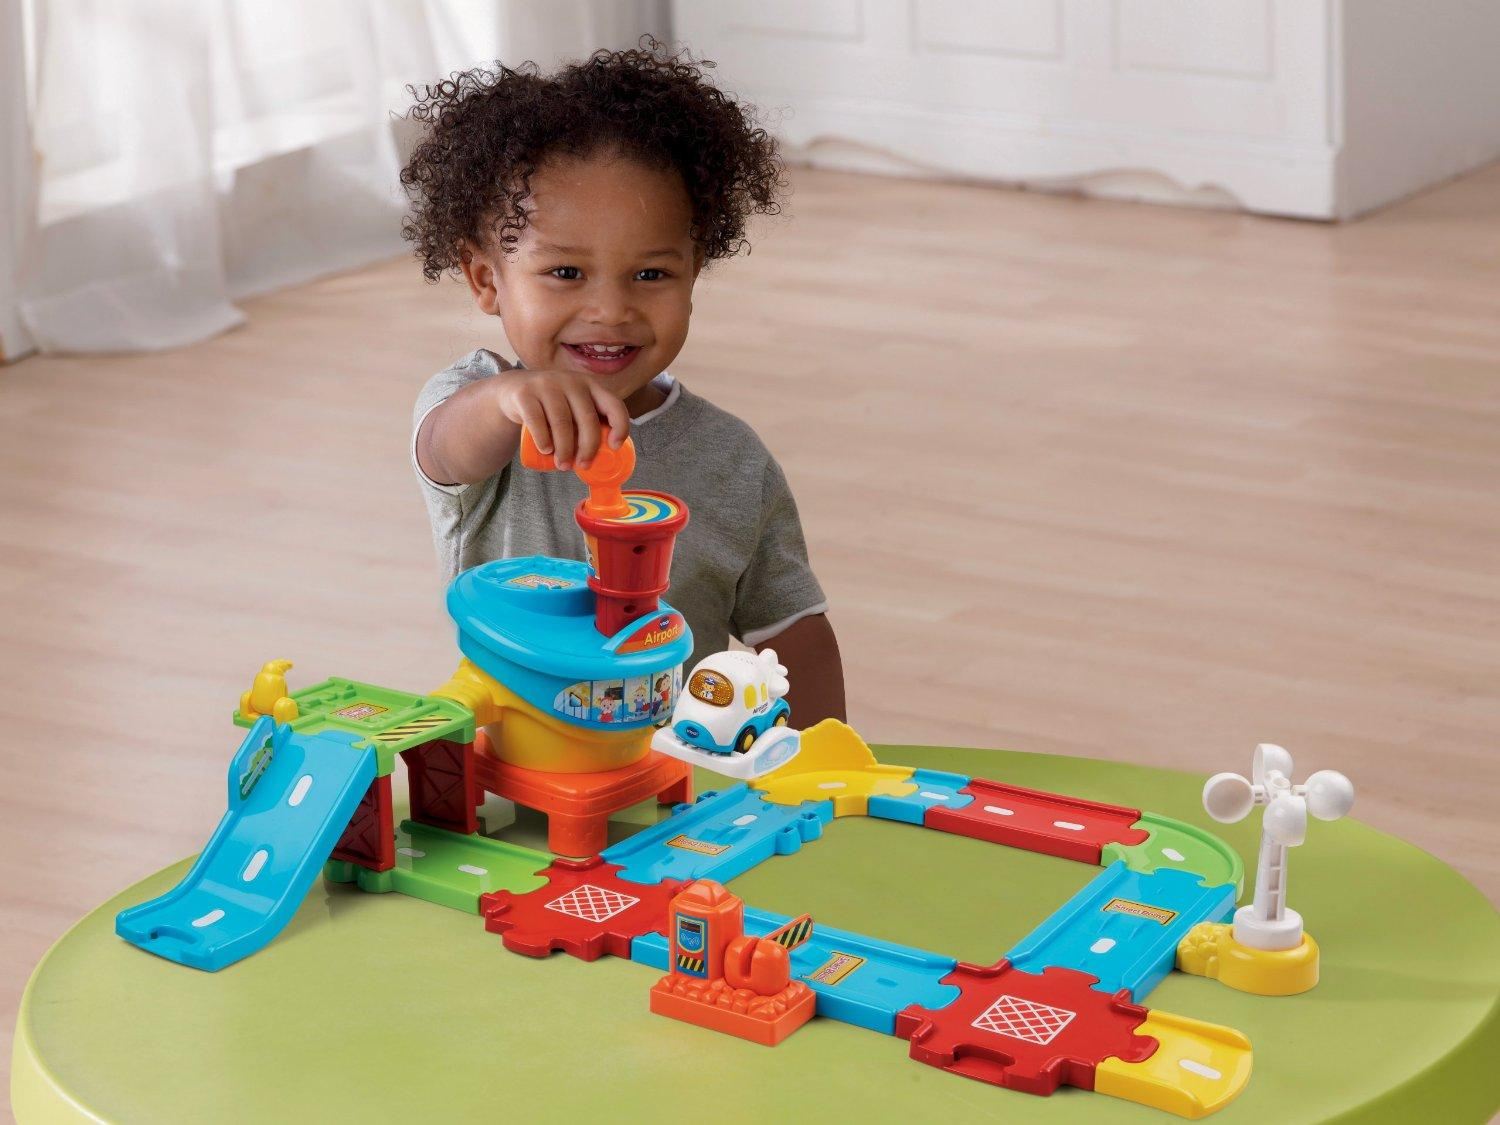 Lowest Price Ever! VTech Go! Go! Smart Wheels Airport Playset